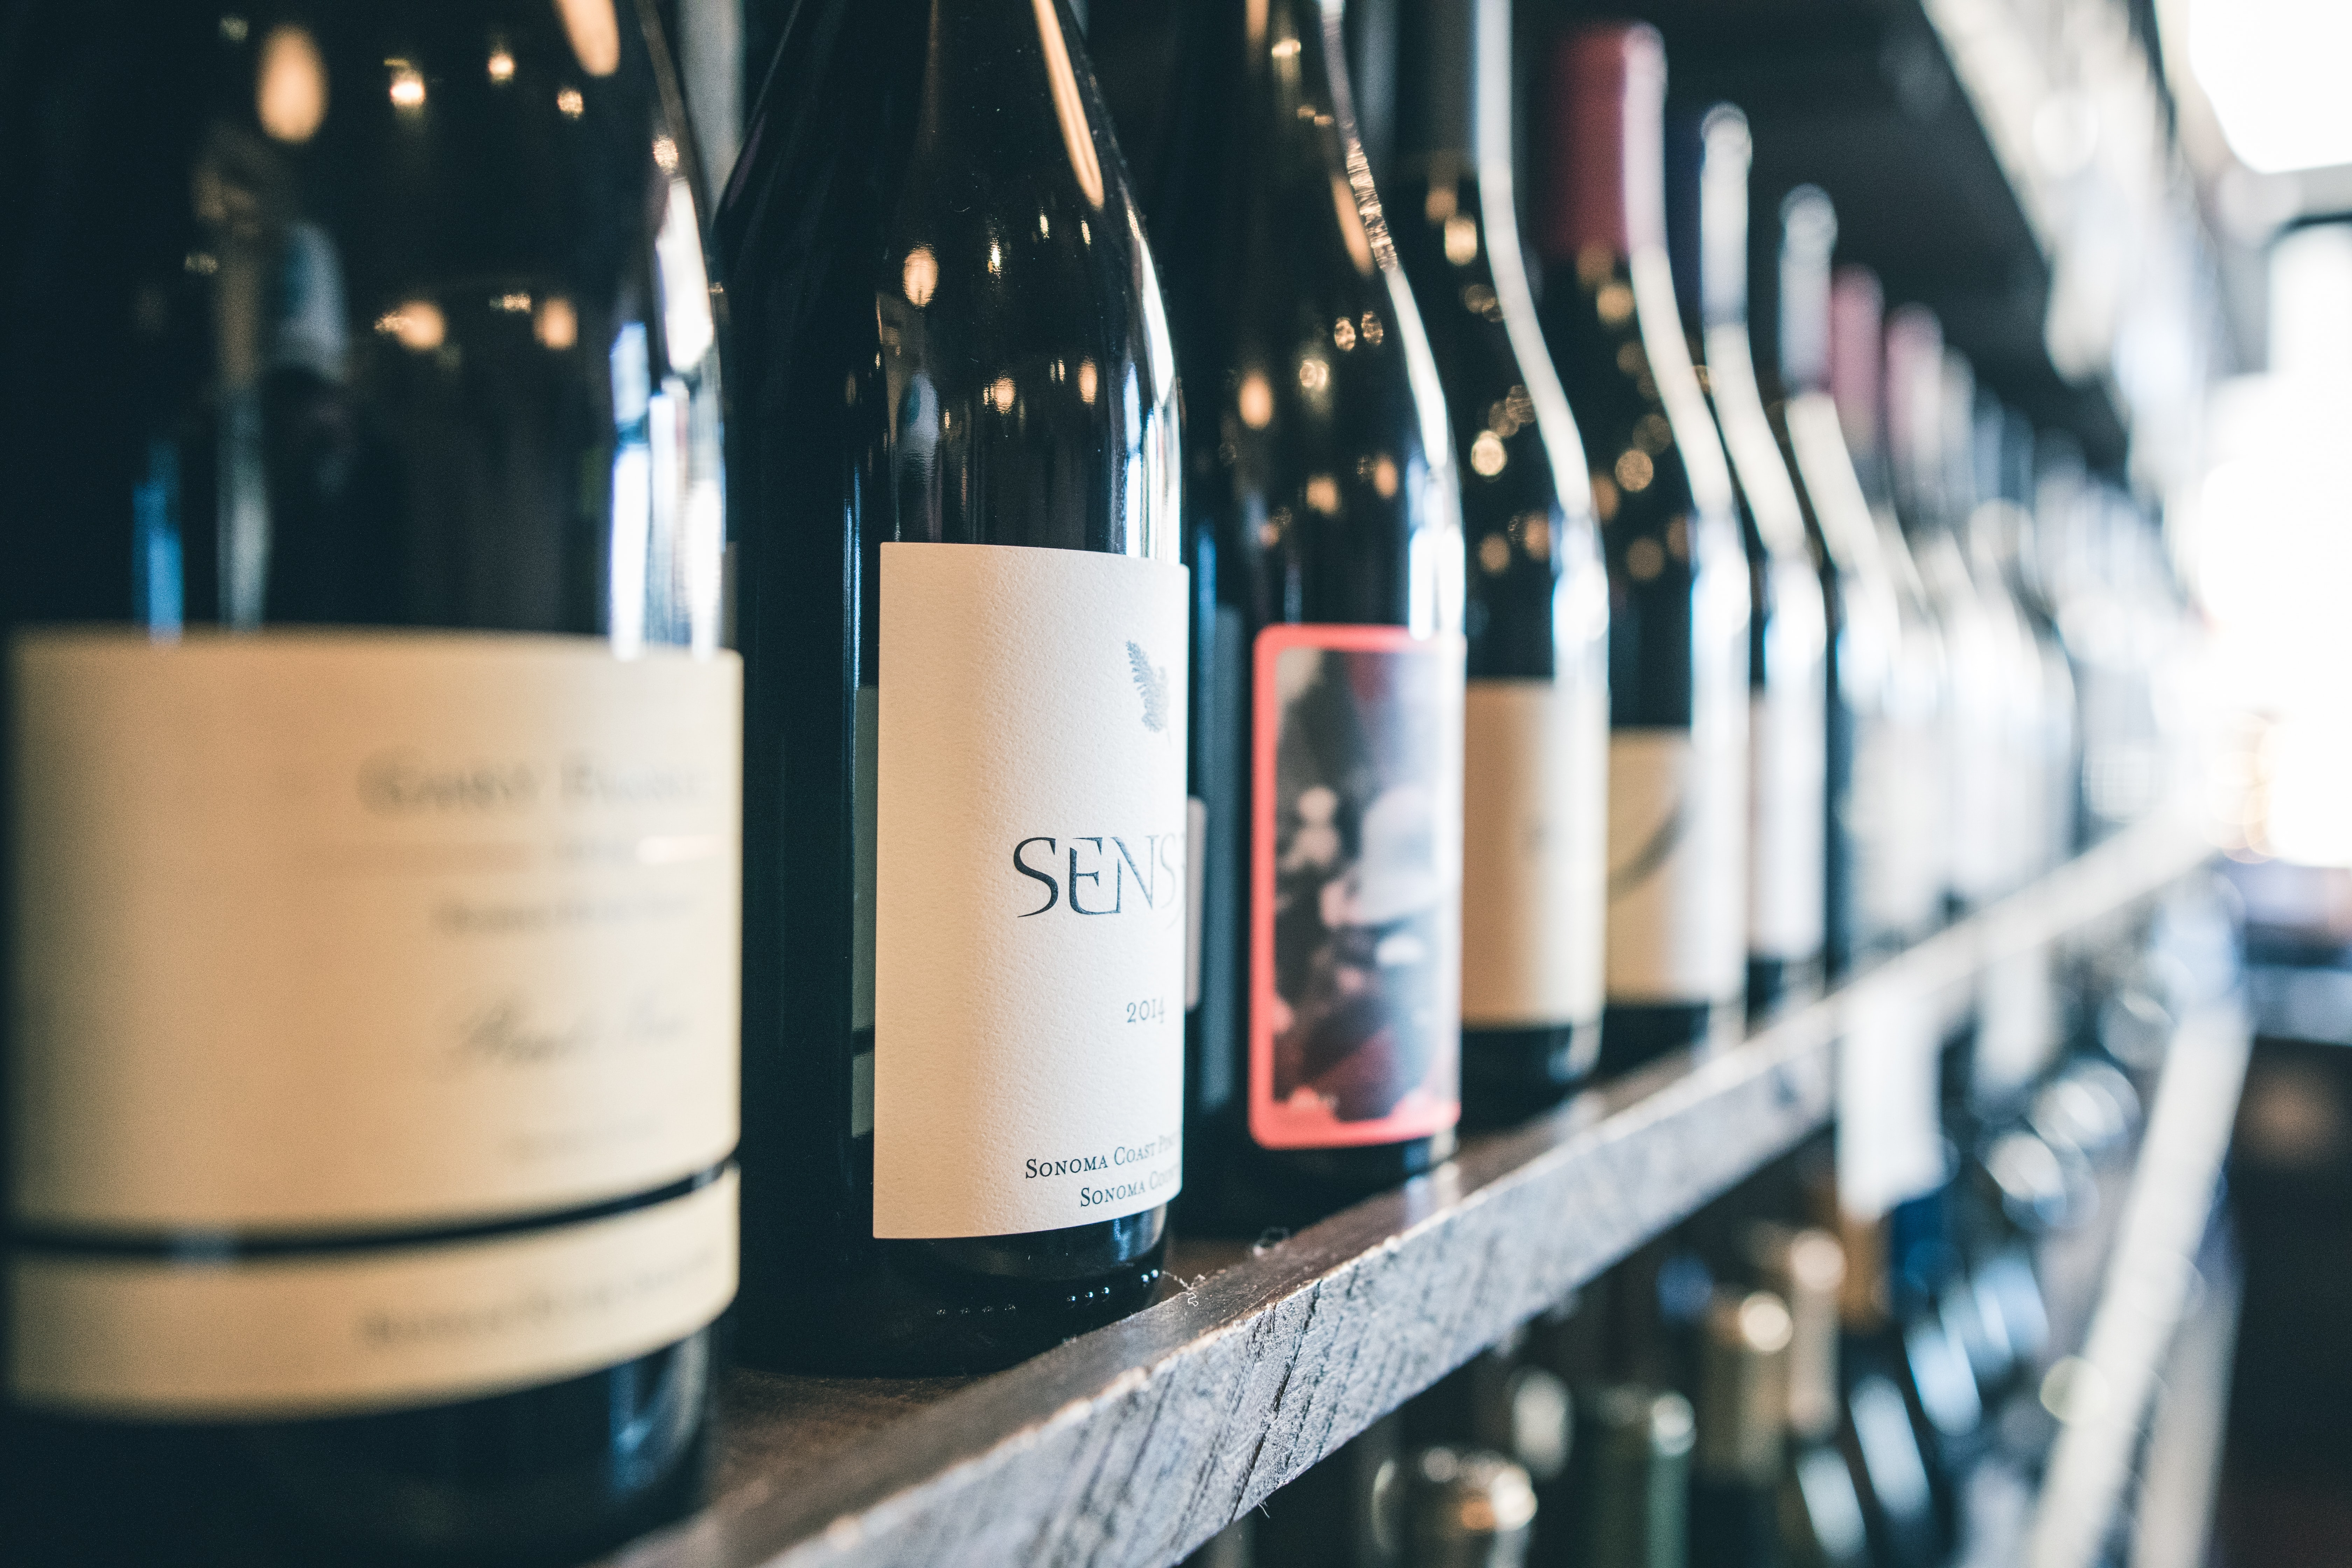 The USA And Europe Table Wine Differences